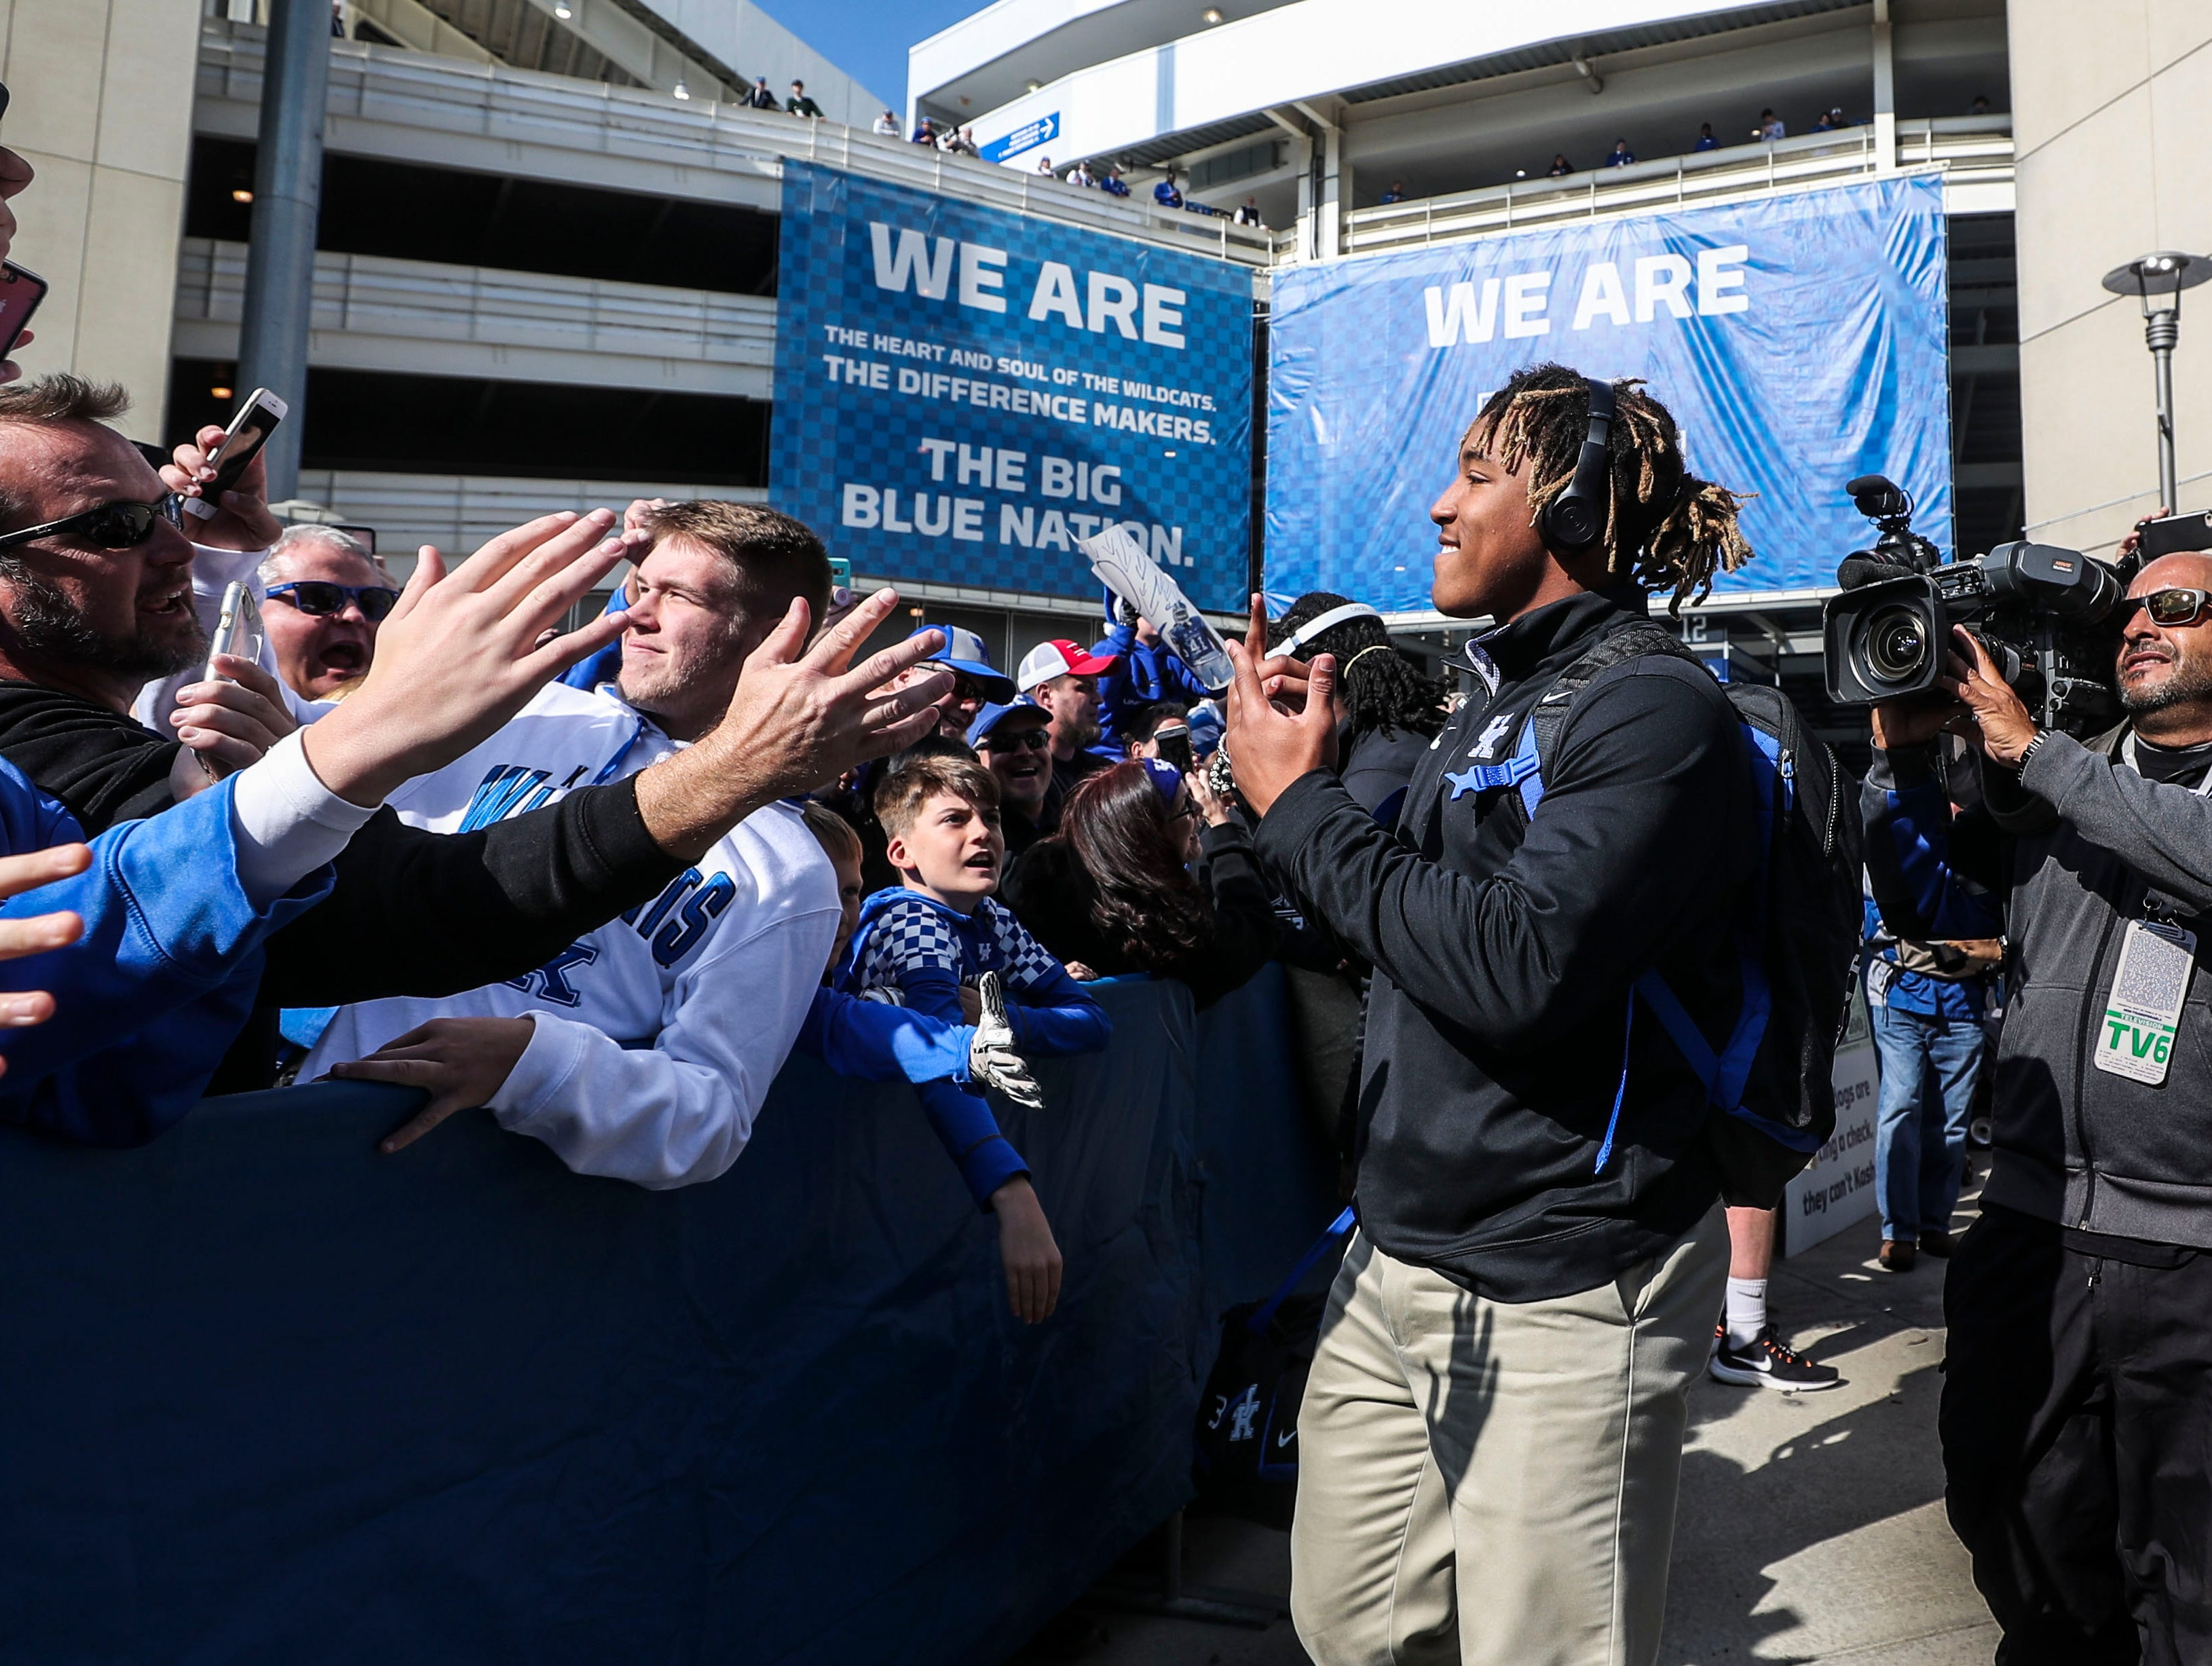 Kentucky running back Benny Snell greets fans at the Cat Walk before the Kentucky-Georgia game Saturday. Nov. 3, 2018